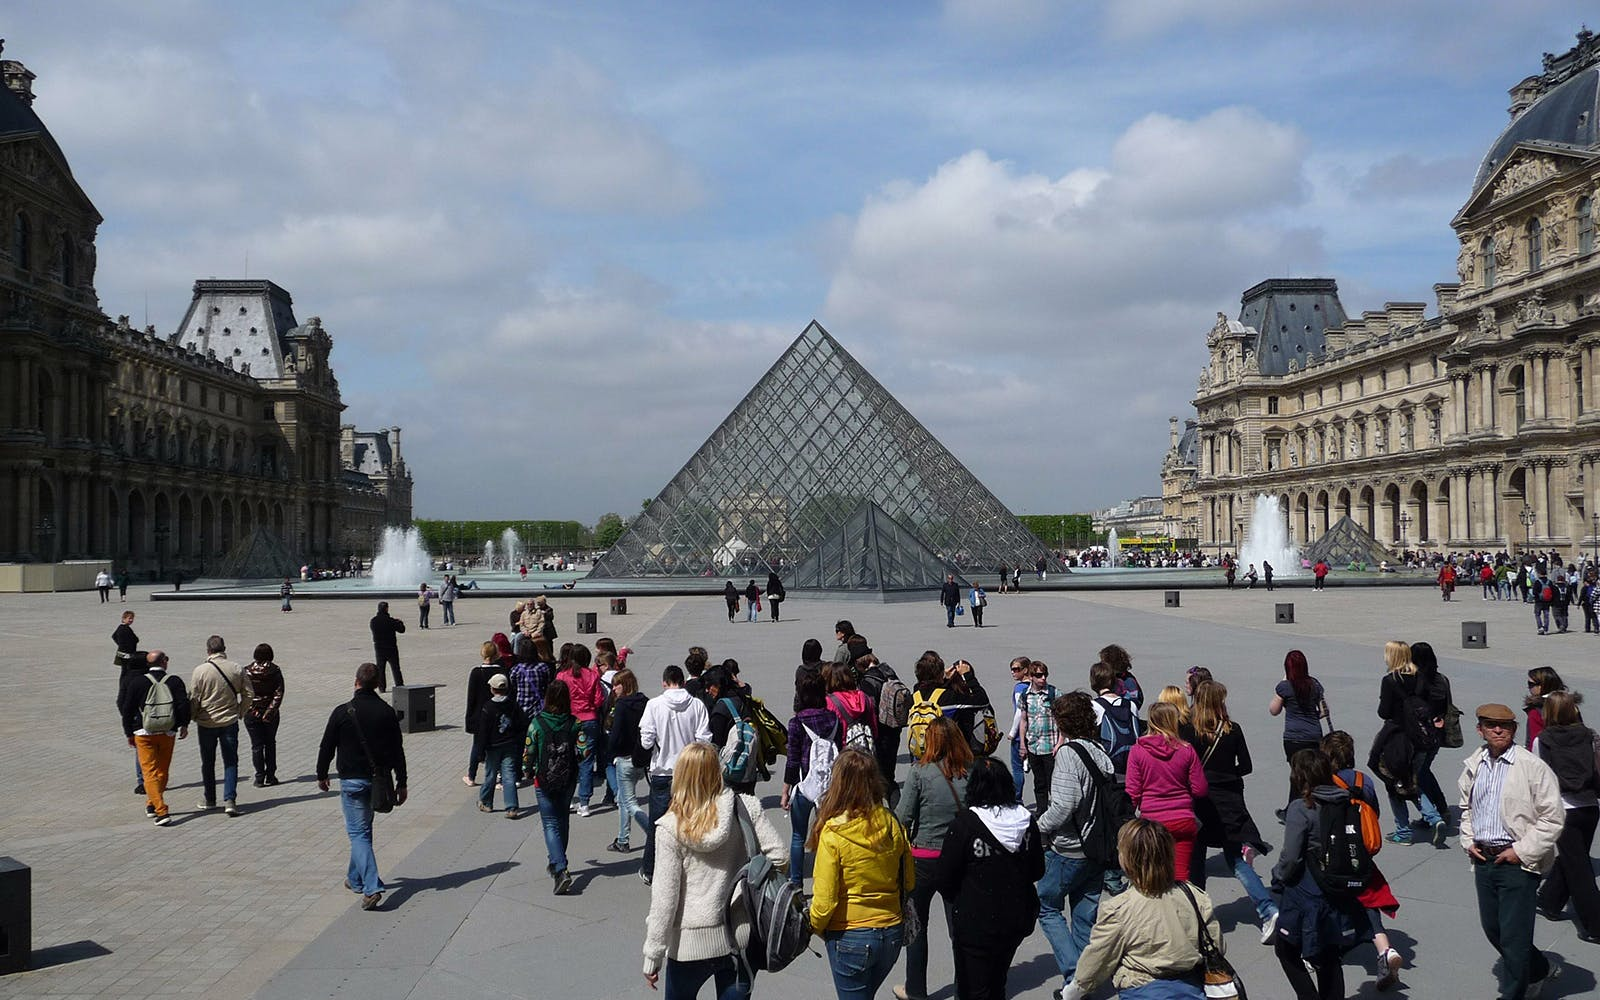 hop-on hop-off - 1 day, 2 day, 3 day paris sightseeing tour-2